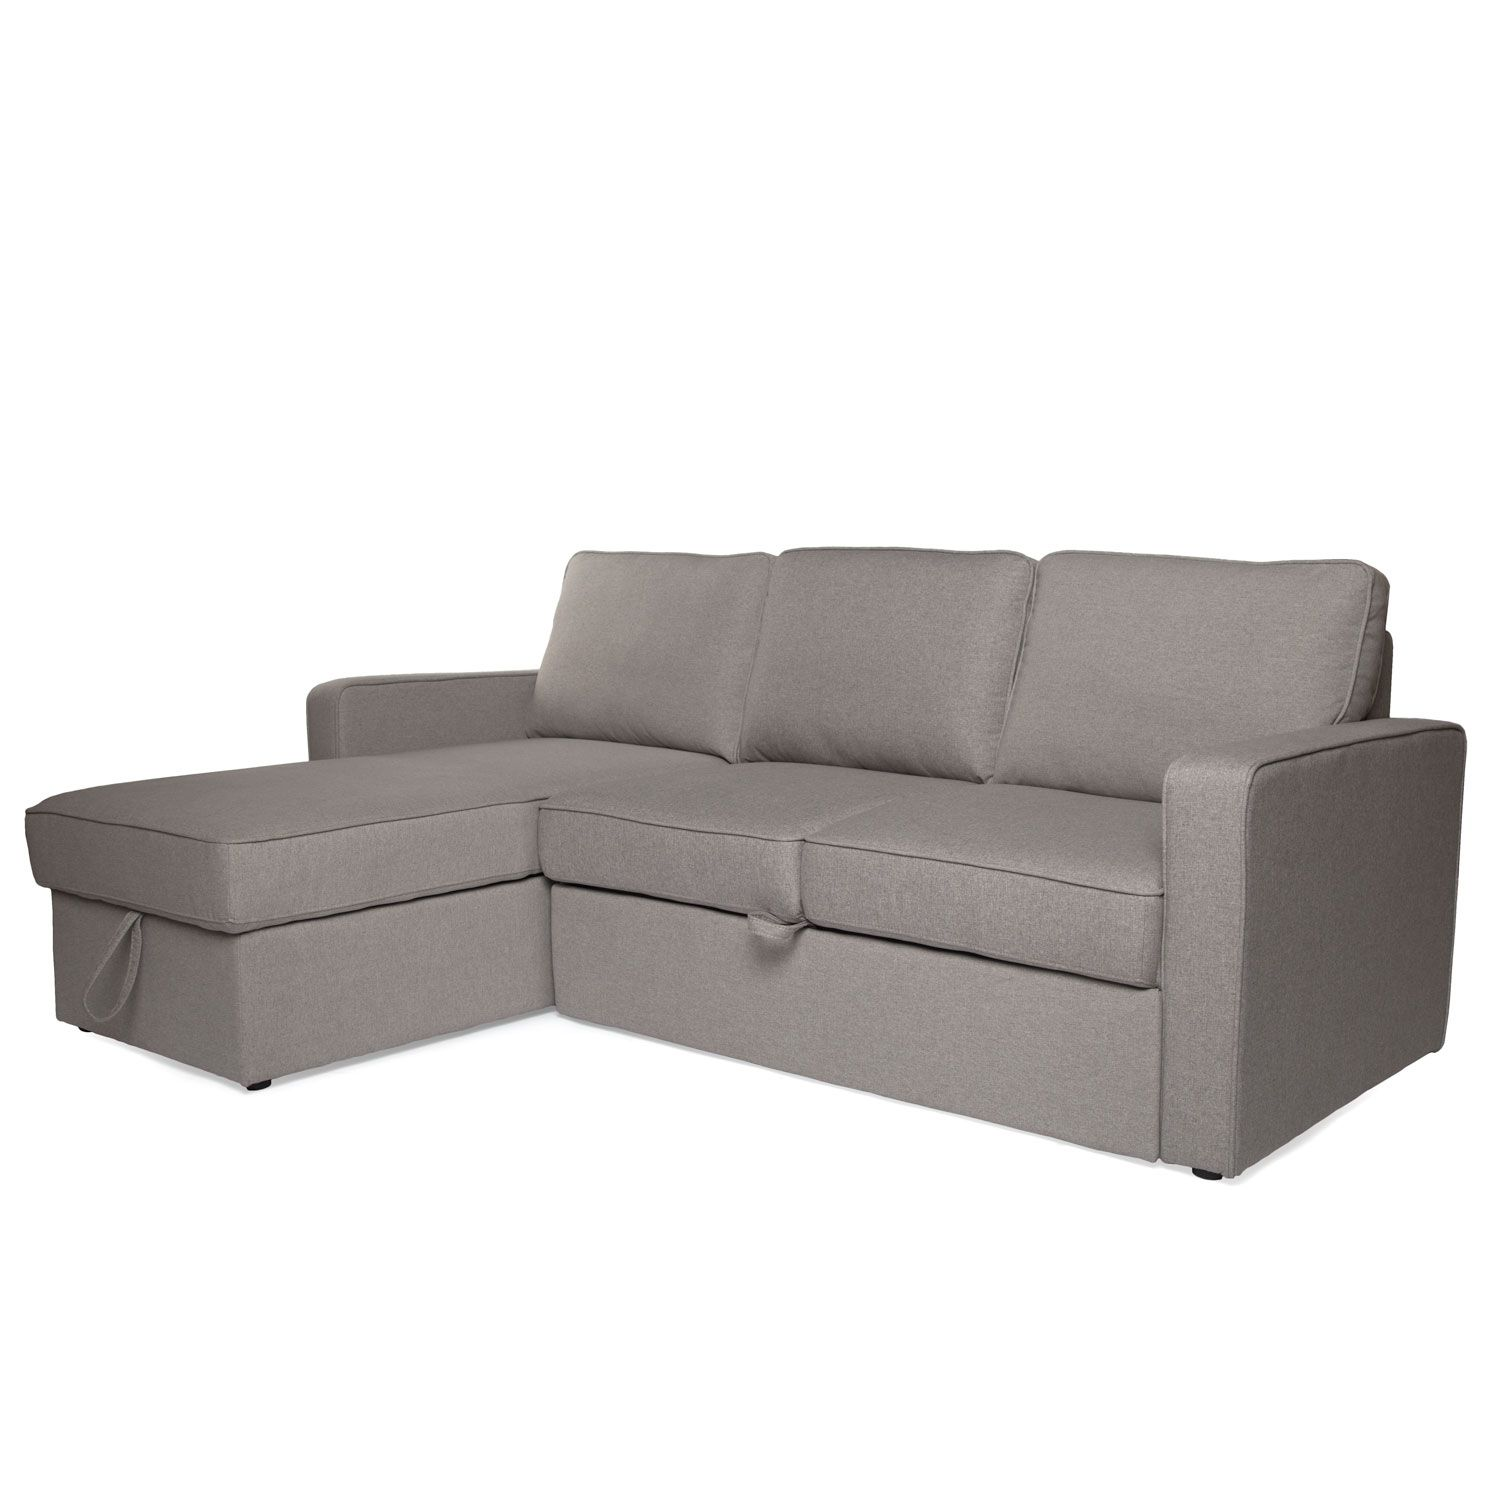 Sectional sofa bed with storage Durable 100 polyester